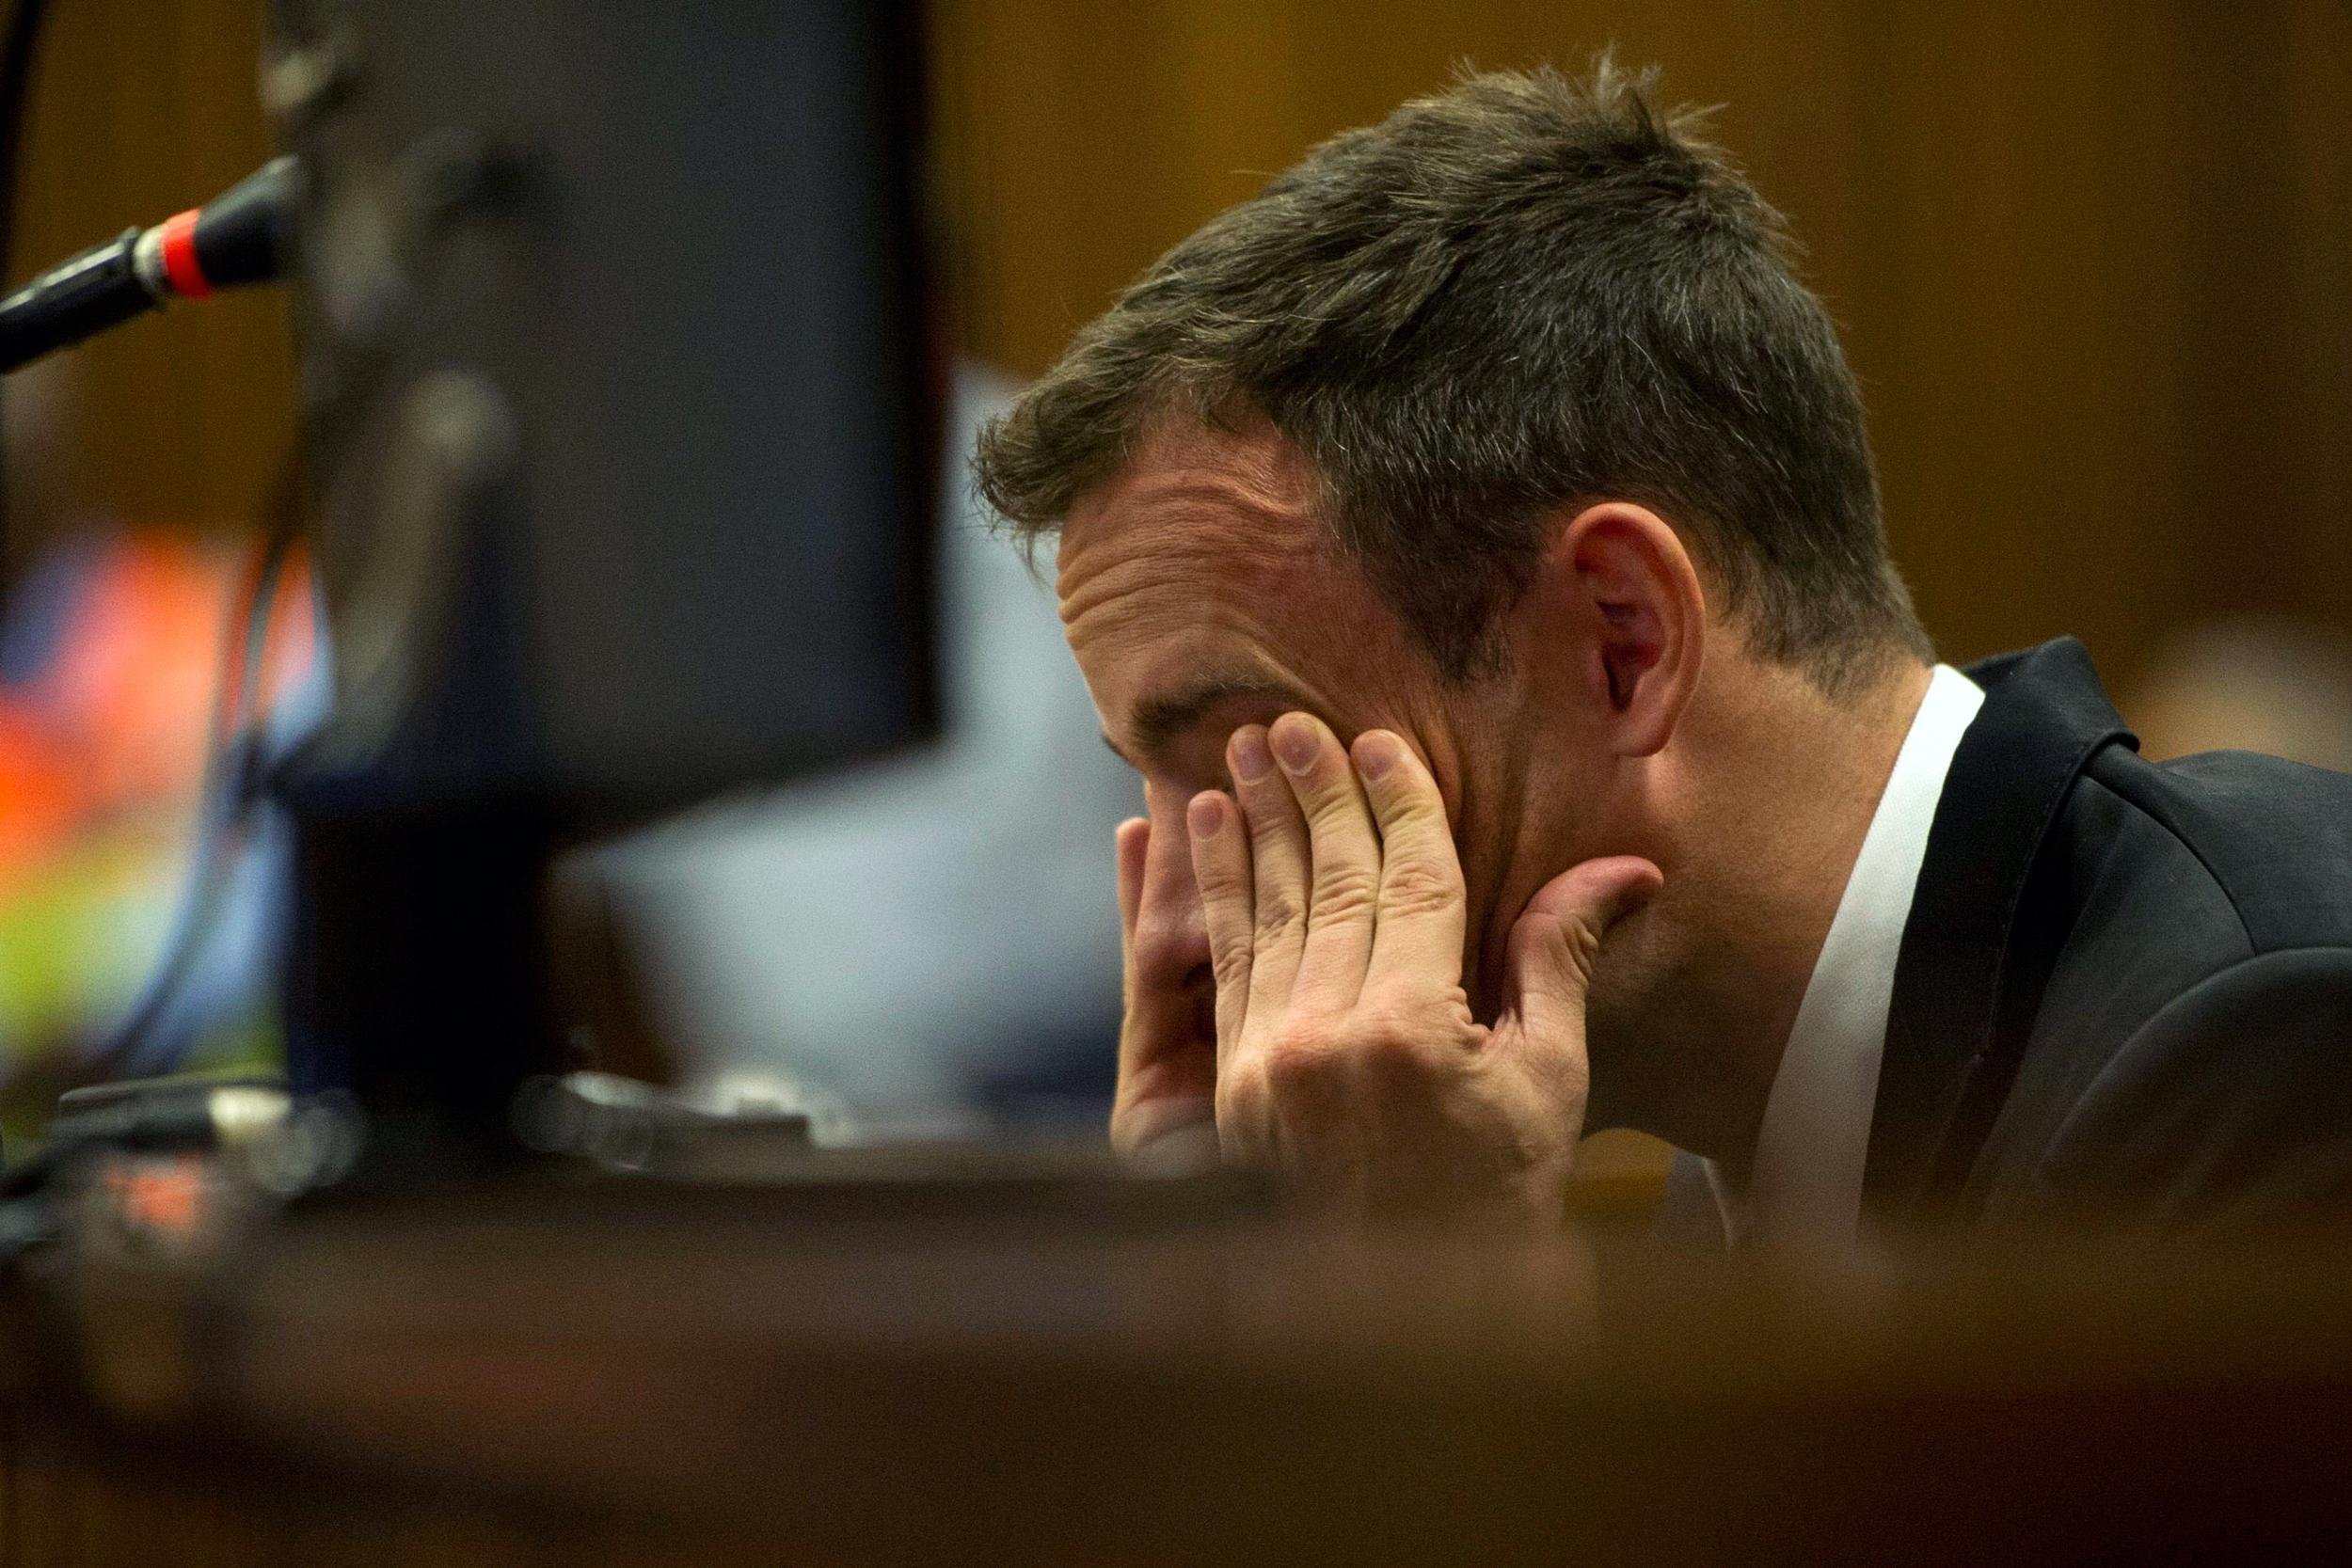 Image: Oscar Pistorius reacts during his trial at the high court in Pretoria